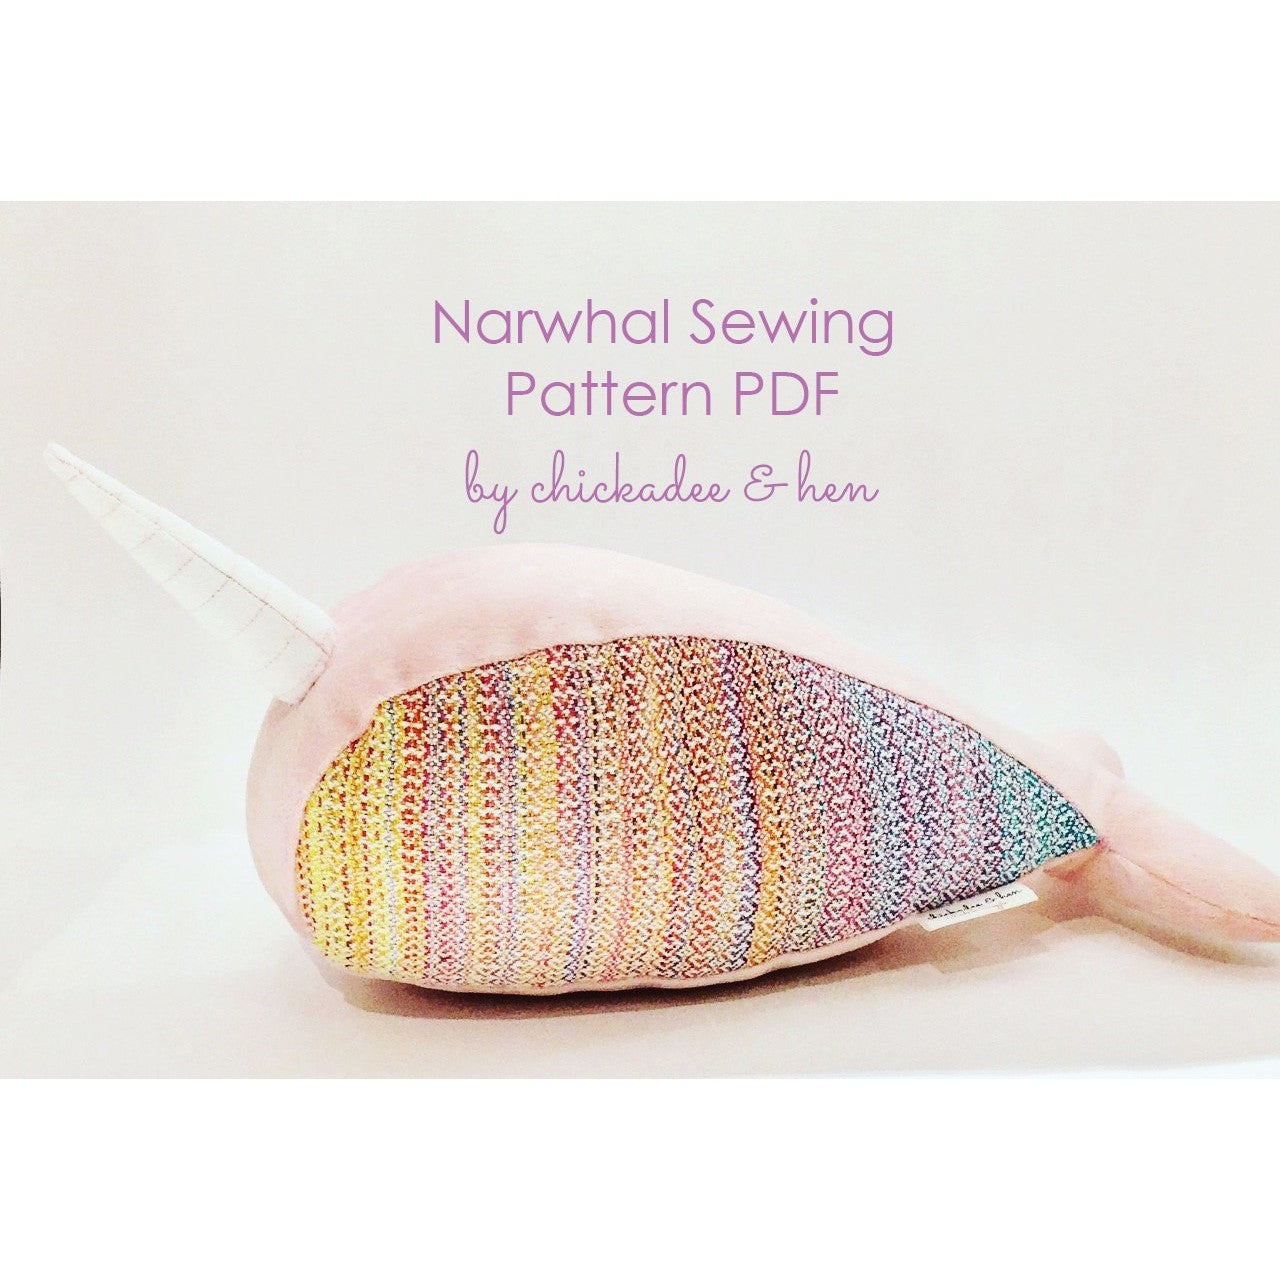 Narwhal sewing pattern pdf easy sewing instructions for beginner narwhal sewing pattern pdf easy sewing instructions for beginner sewing sew your own narwhal jeuxipadfo Image collections